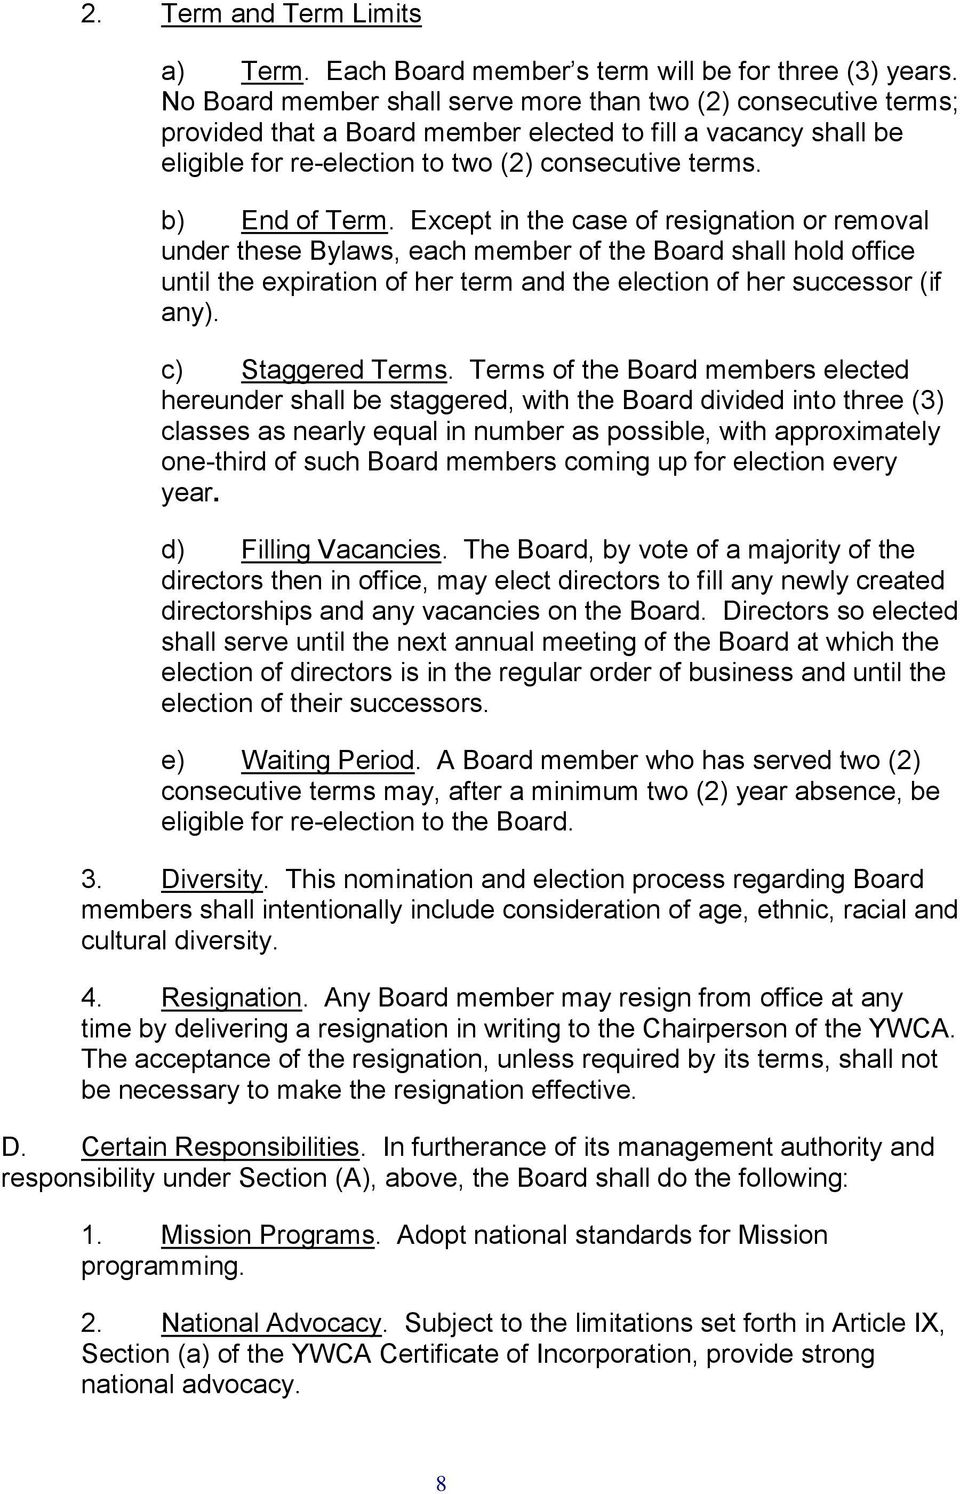 Except in the case of resignation or removal under these Bylaws, each member of the Board shall hold office until the expiration of her term and the election of her successor (if any).